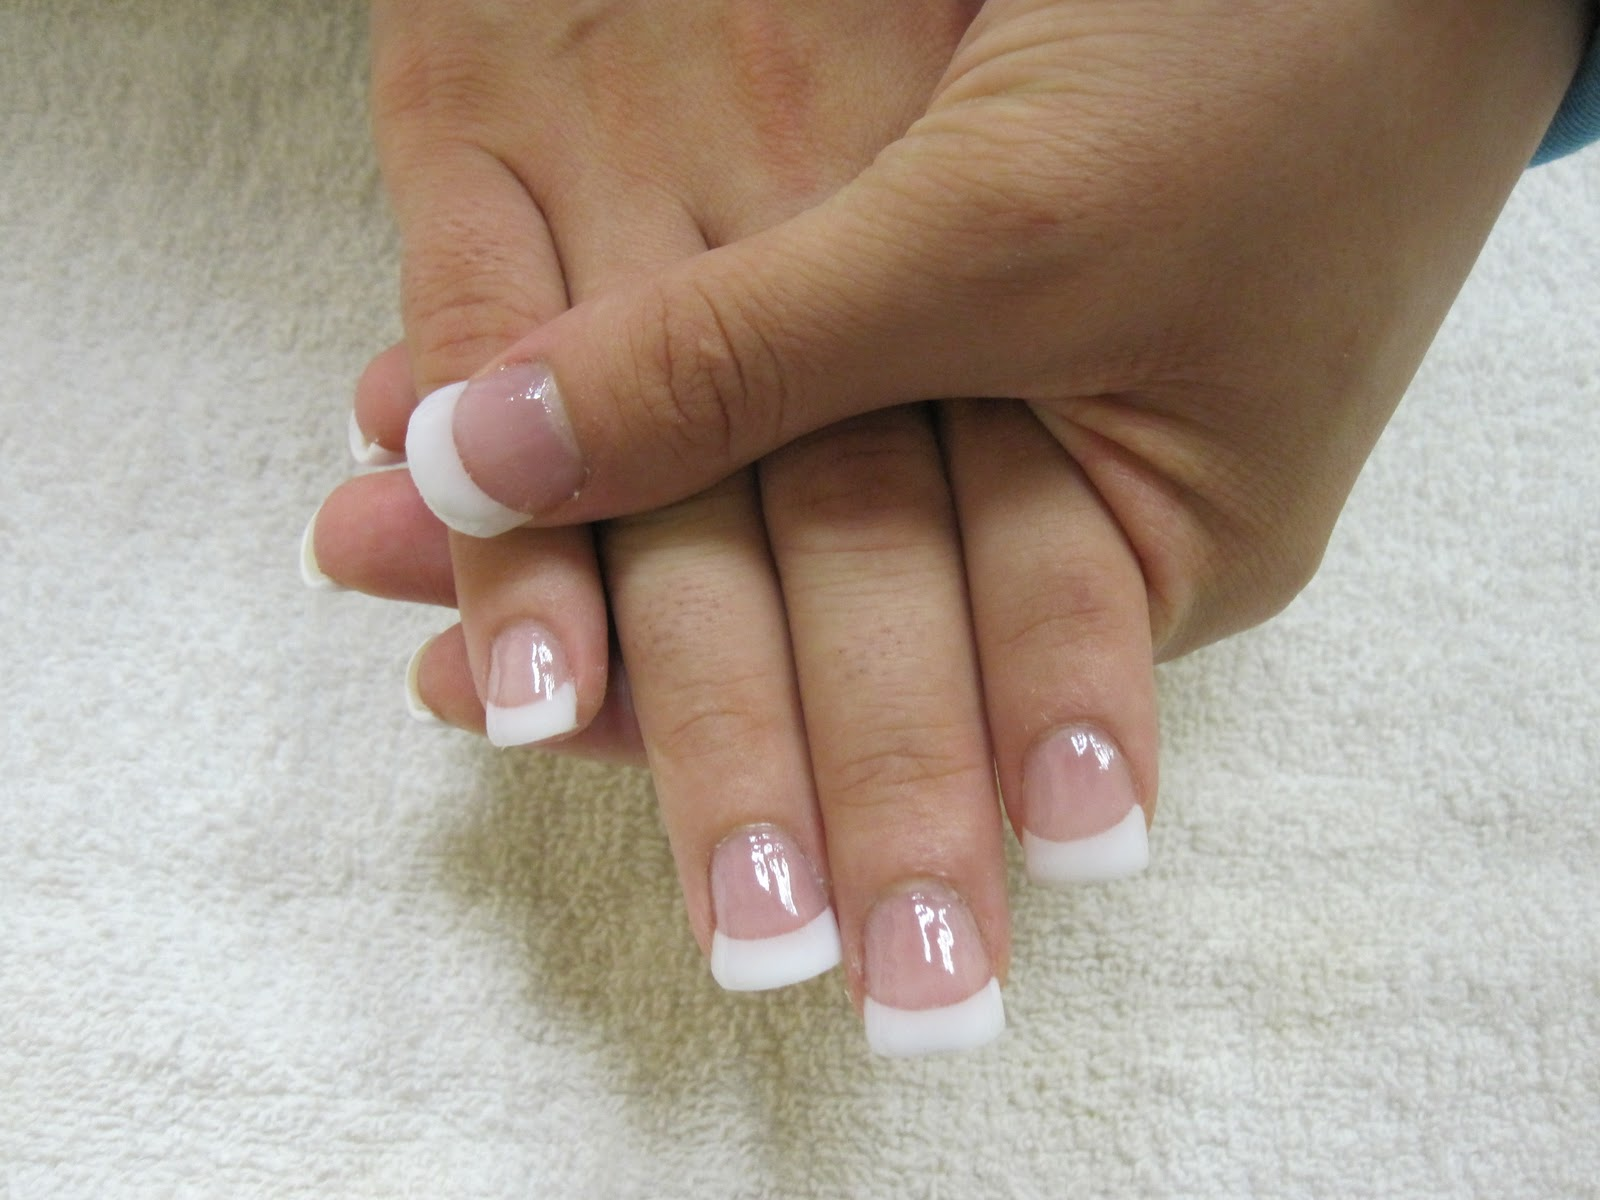 Acrylic Nail Designs For White Tips: For professional use only.